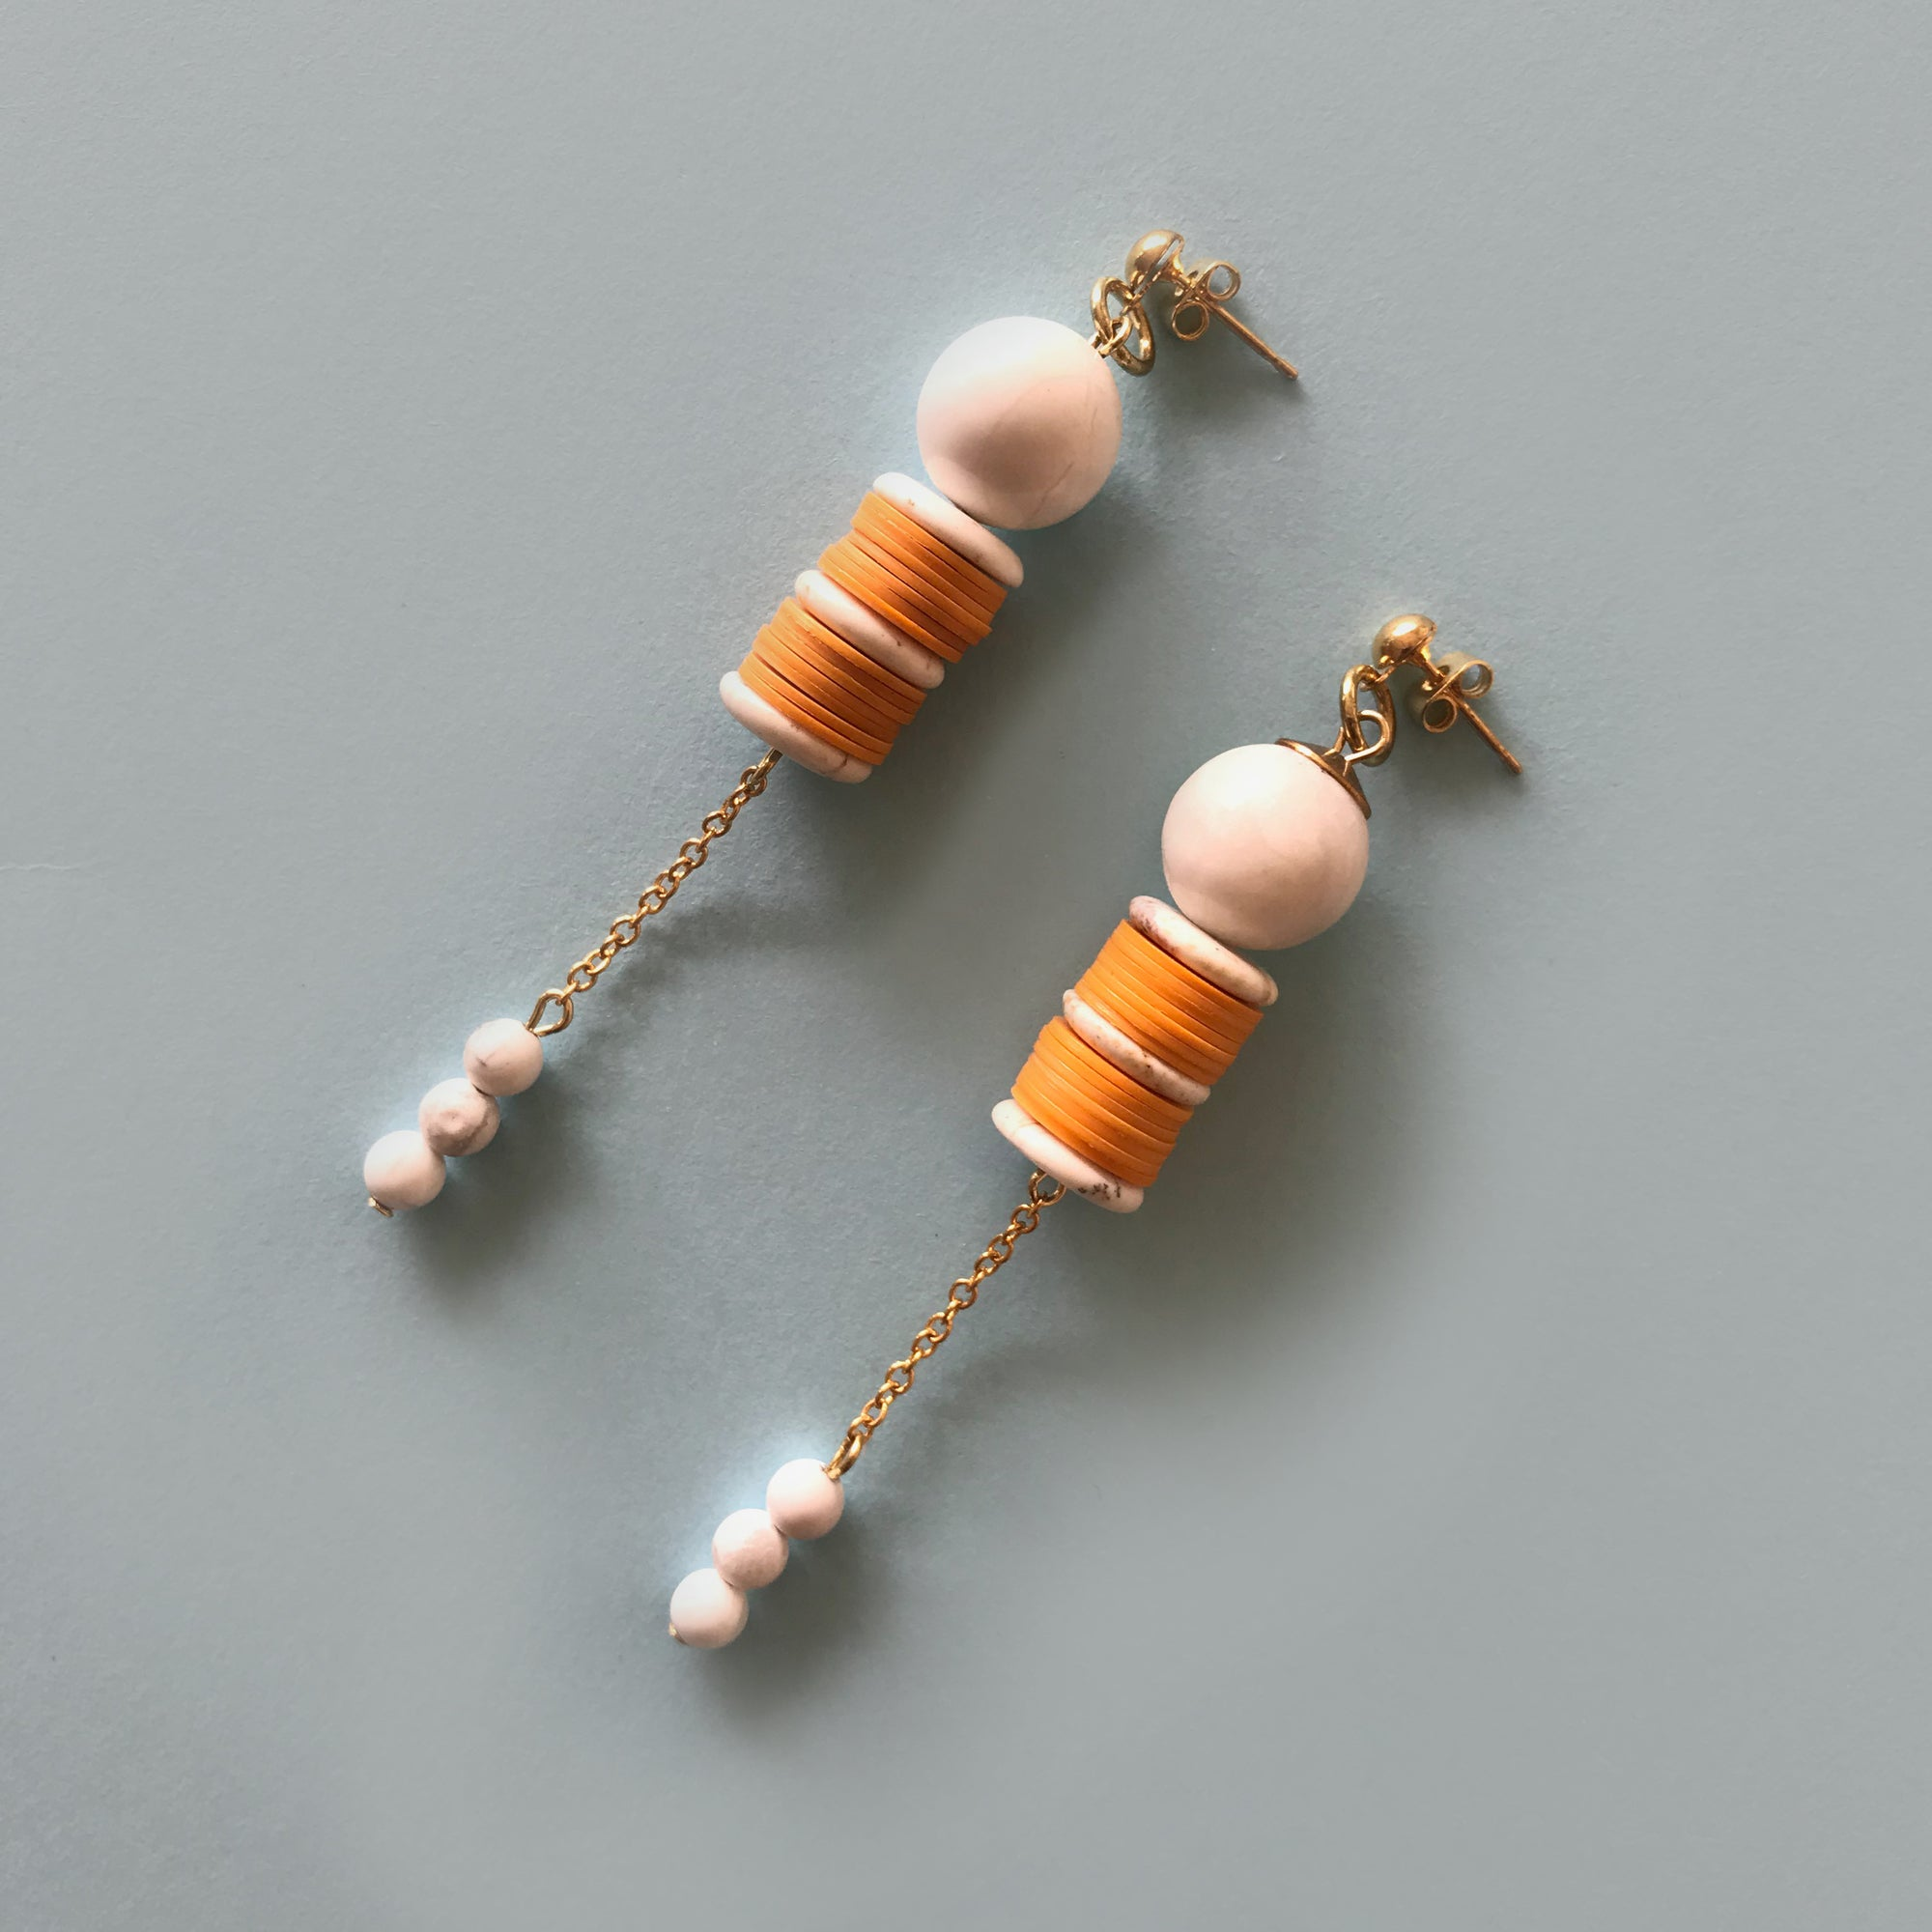 DECO DROP earrings